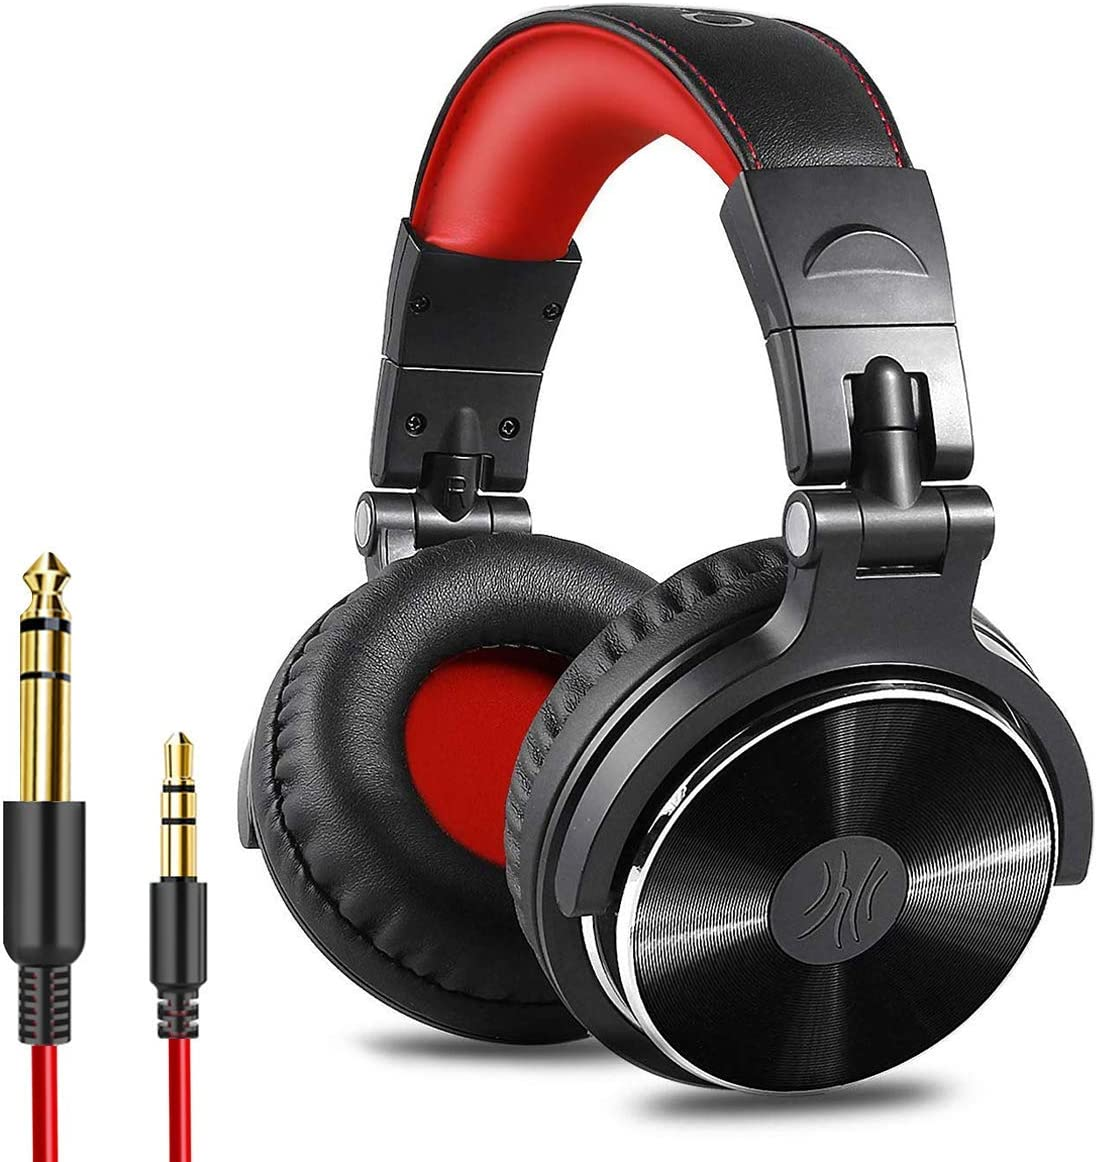 OneOdio Over Ear Headphone, Wired Bass Headsets with 50mm Driver, Foldable Lightweight Headphones with Shareport and Mic for Recording Monitoring Podcast Guitar PC TV – Red